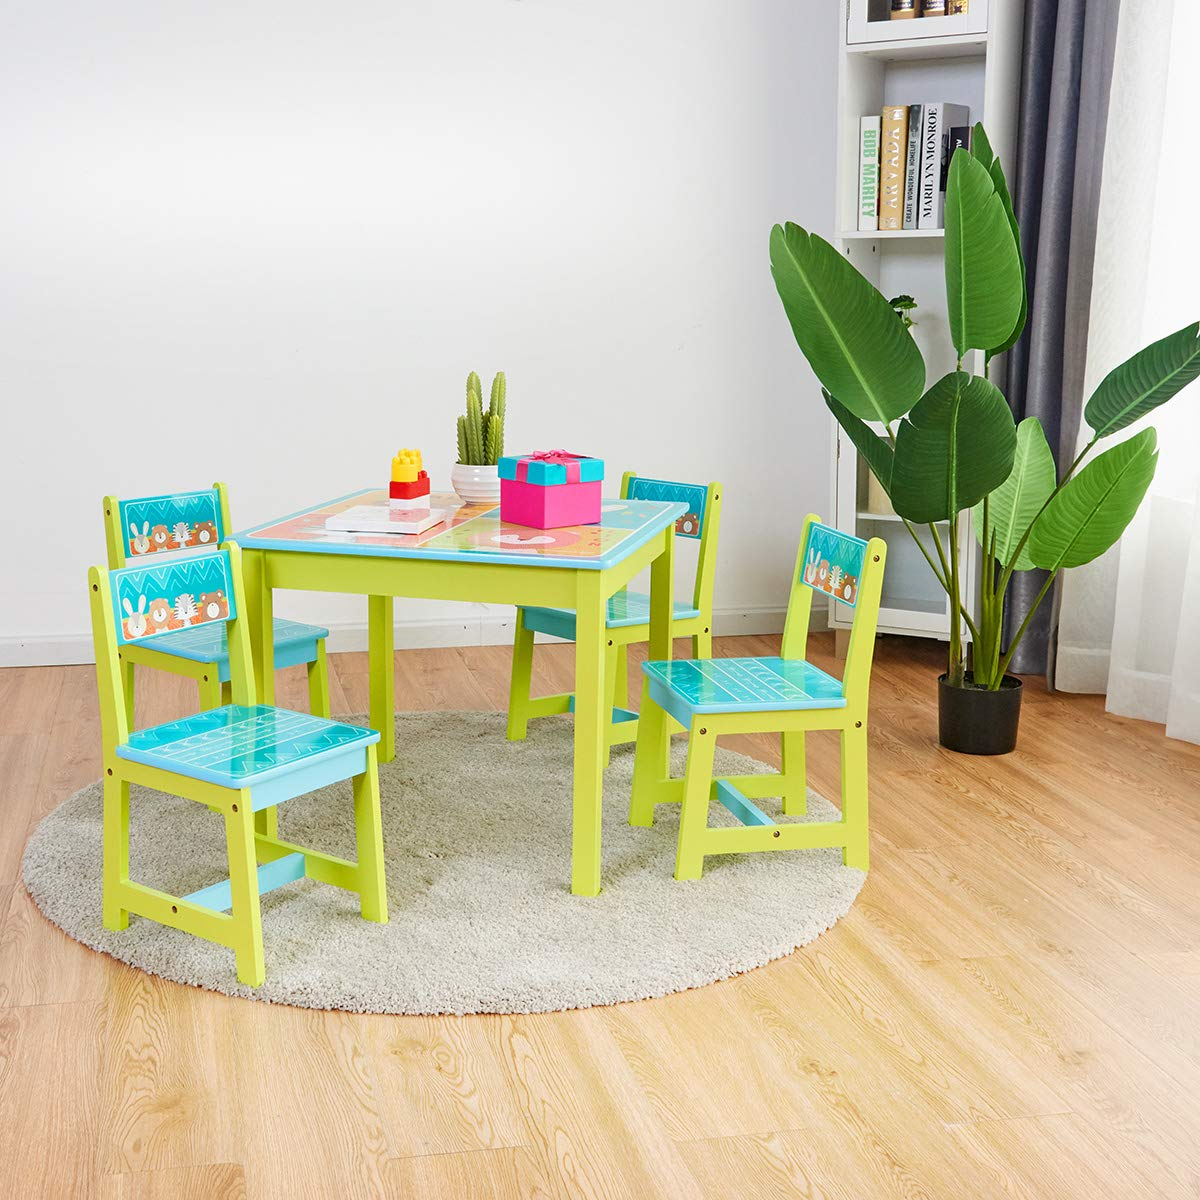 BABY JOY Kids Table and 4 Chairs Set, Wooden MDF Desk for Studying Playing Dining Indoors & Outdoors Activity, Toddler Baby Gift Desk Furniture Cartoon Pattern (Table and 4 Chairs) by BABY JOY (Image #8)